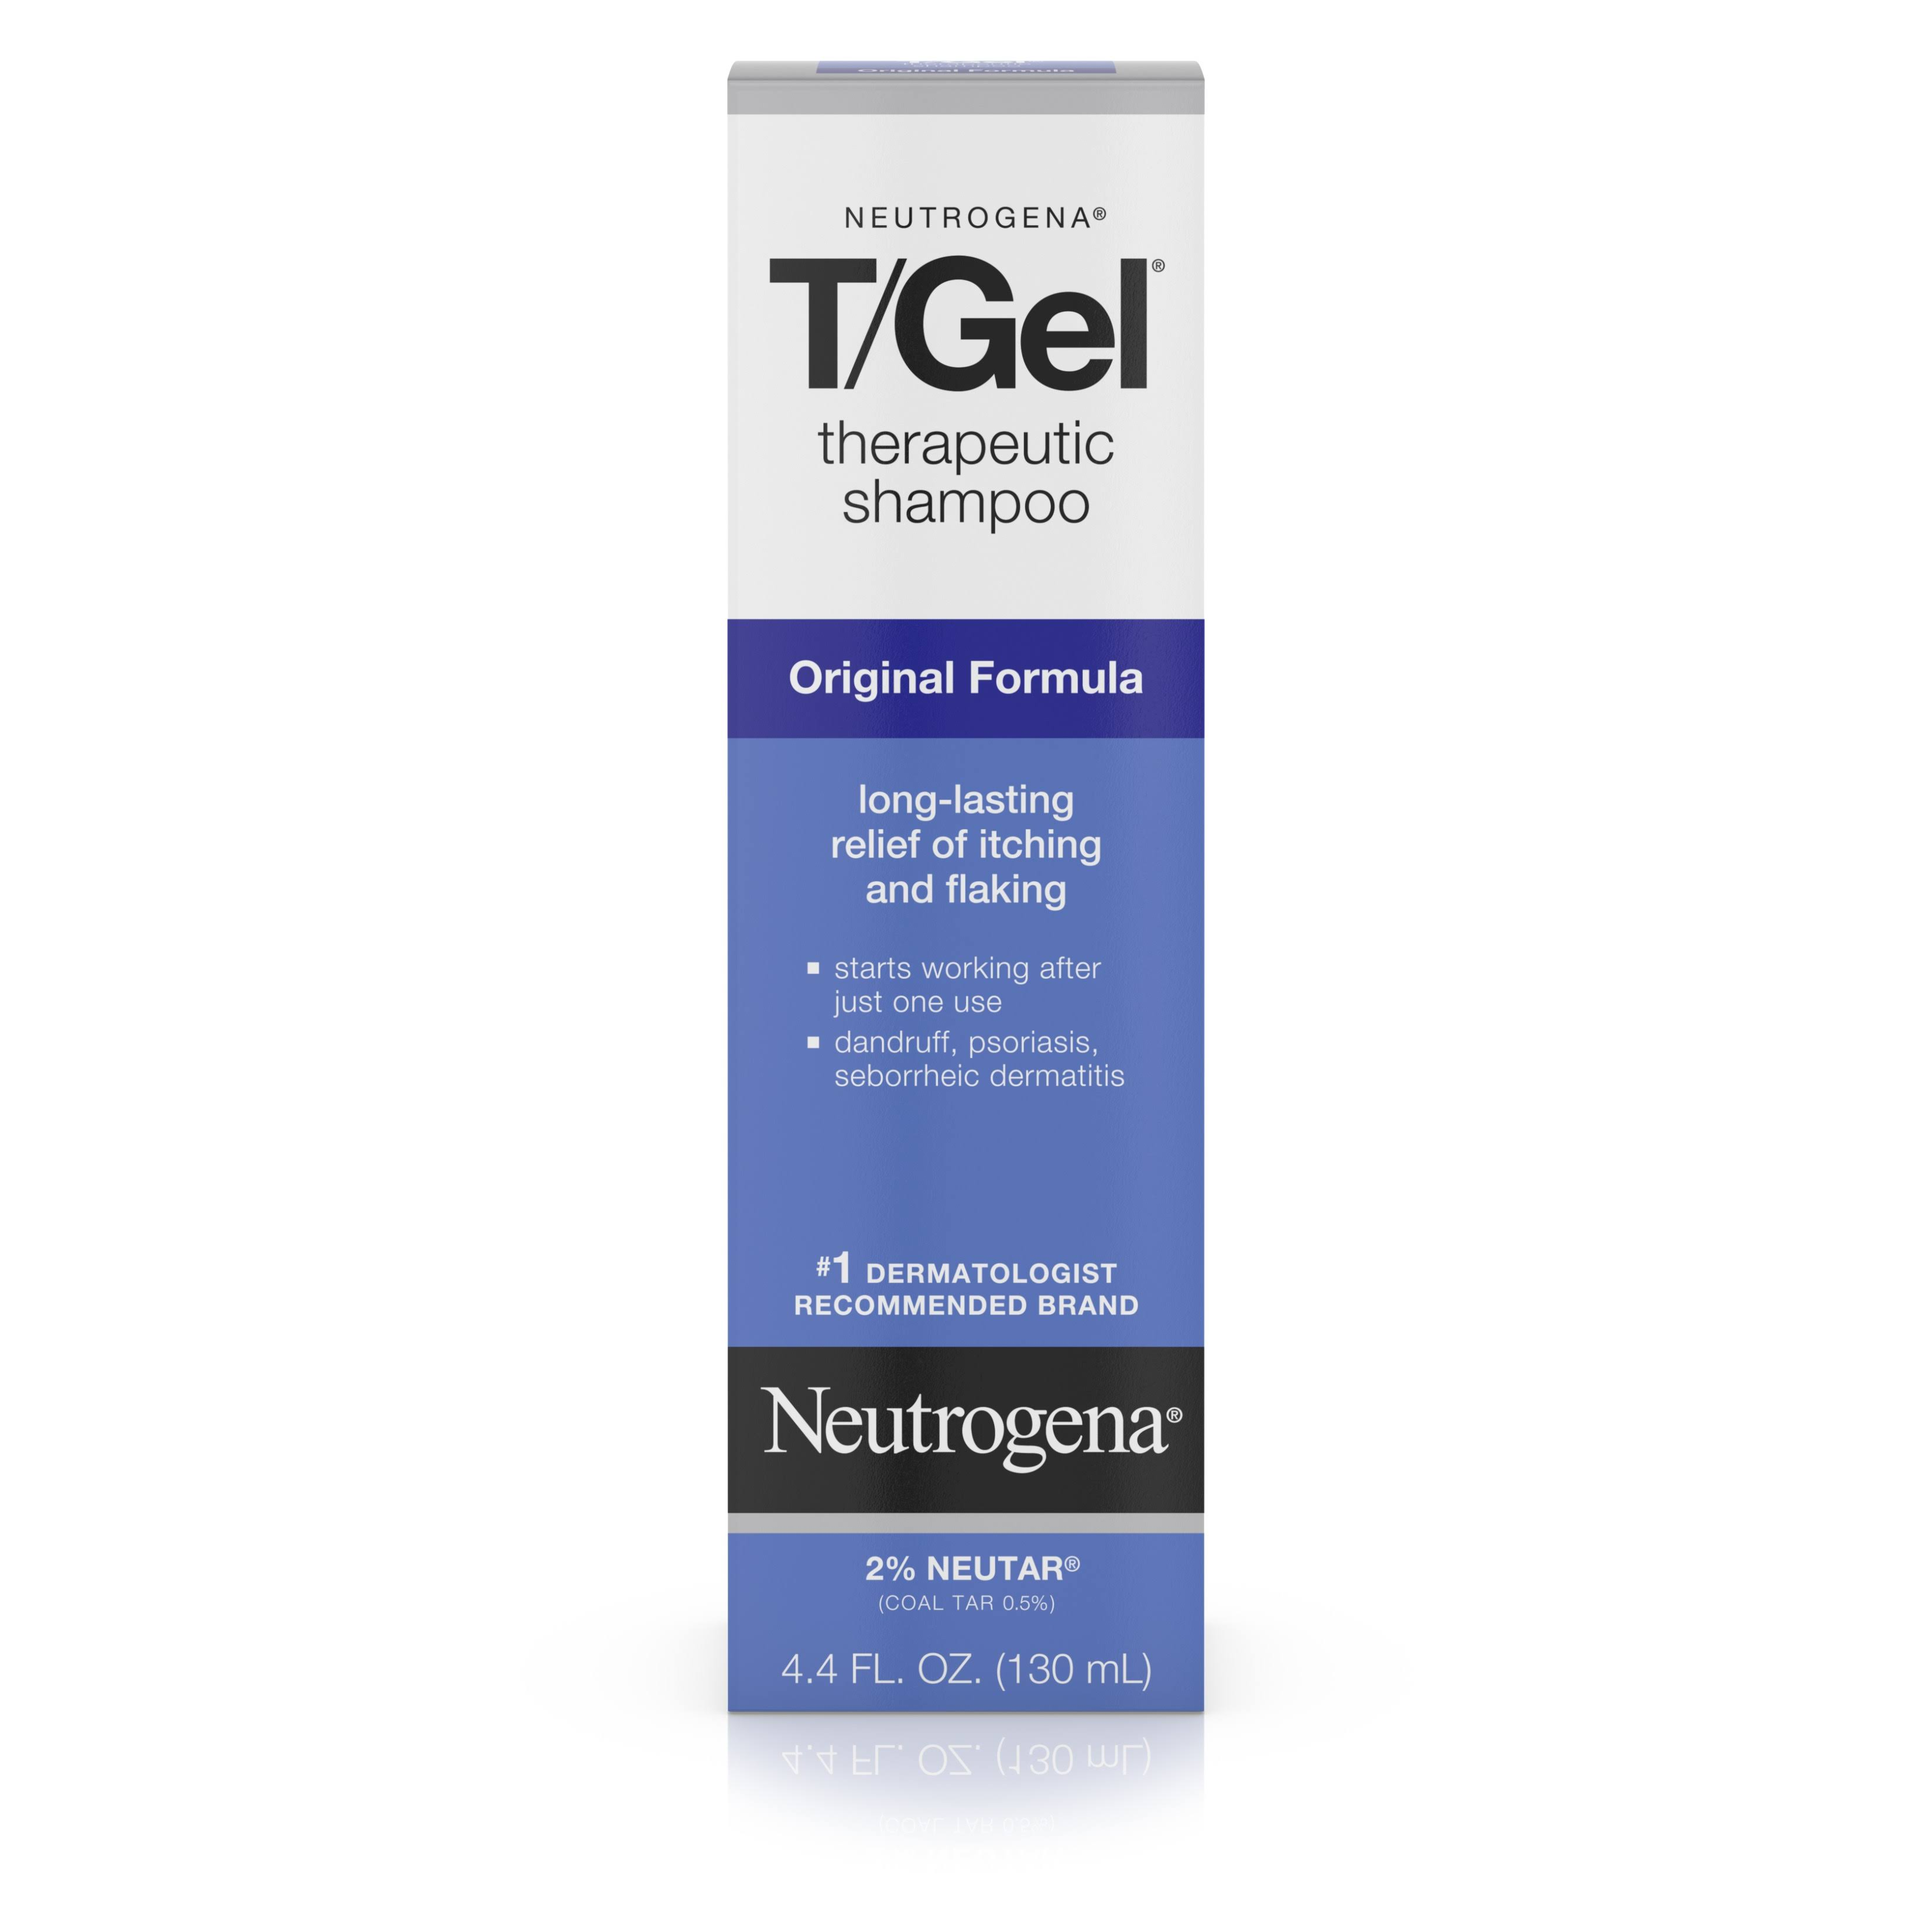 Neutrogena T/Gel Therapeutic Shampoo - Original, 4.4oz